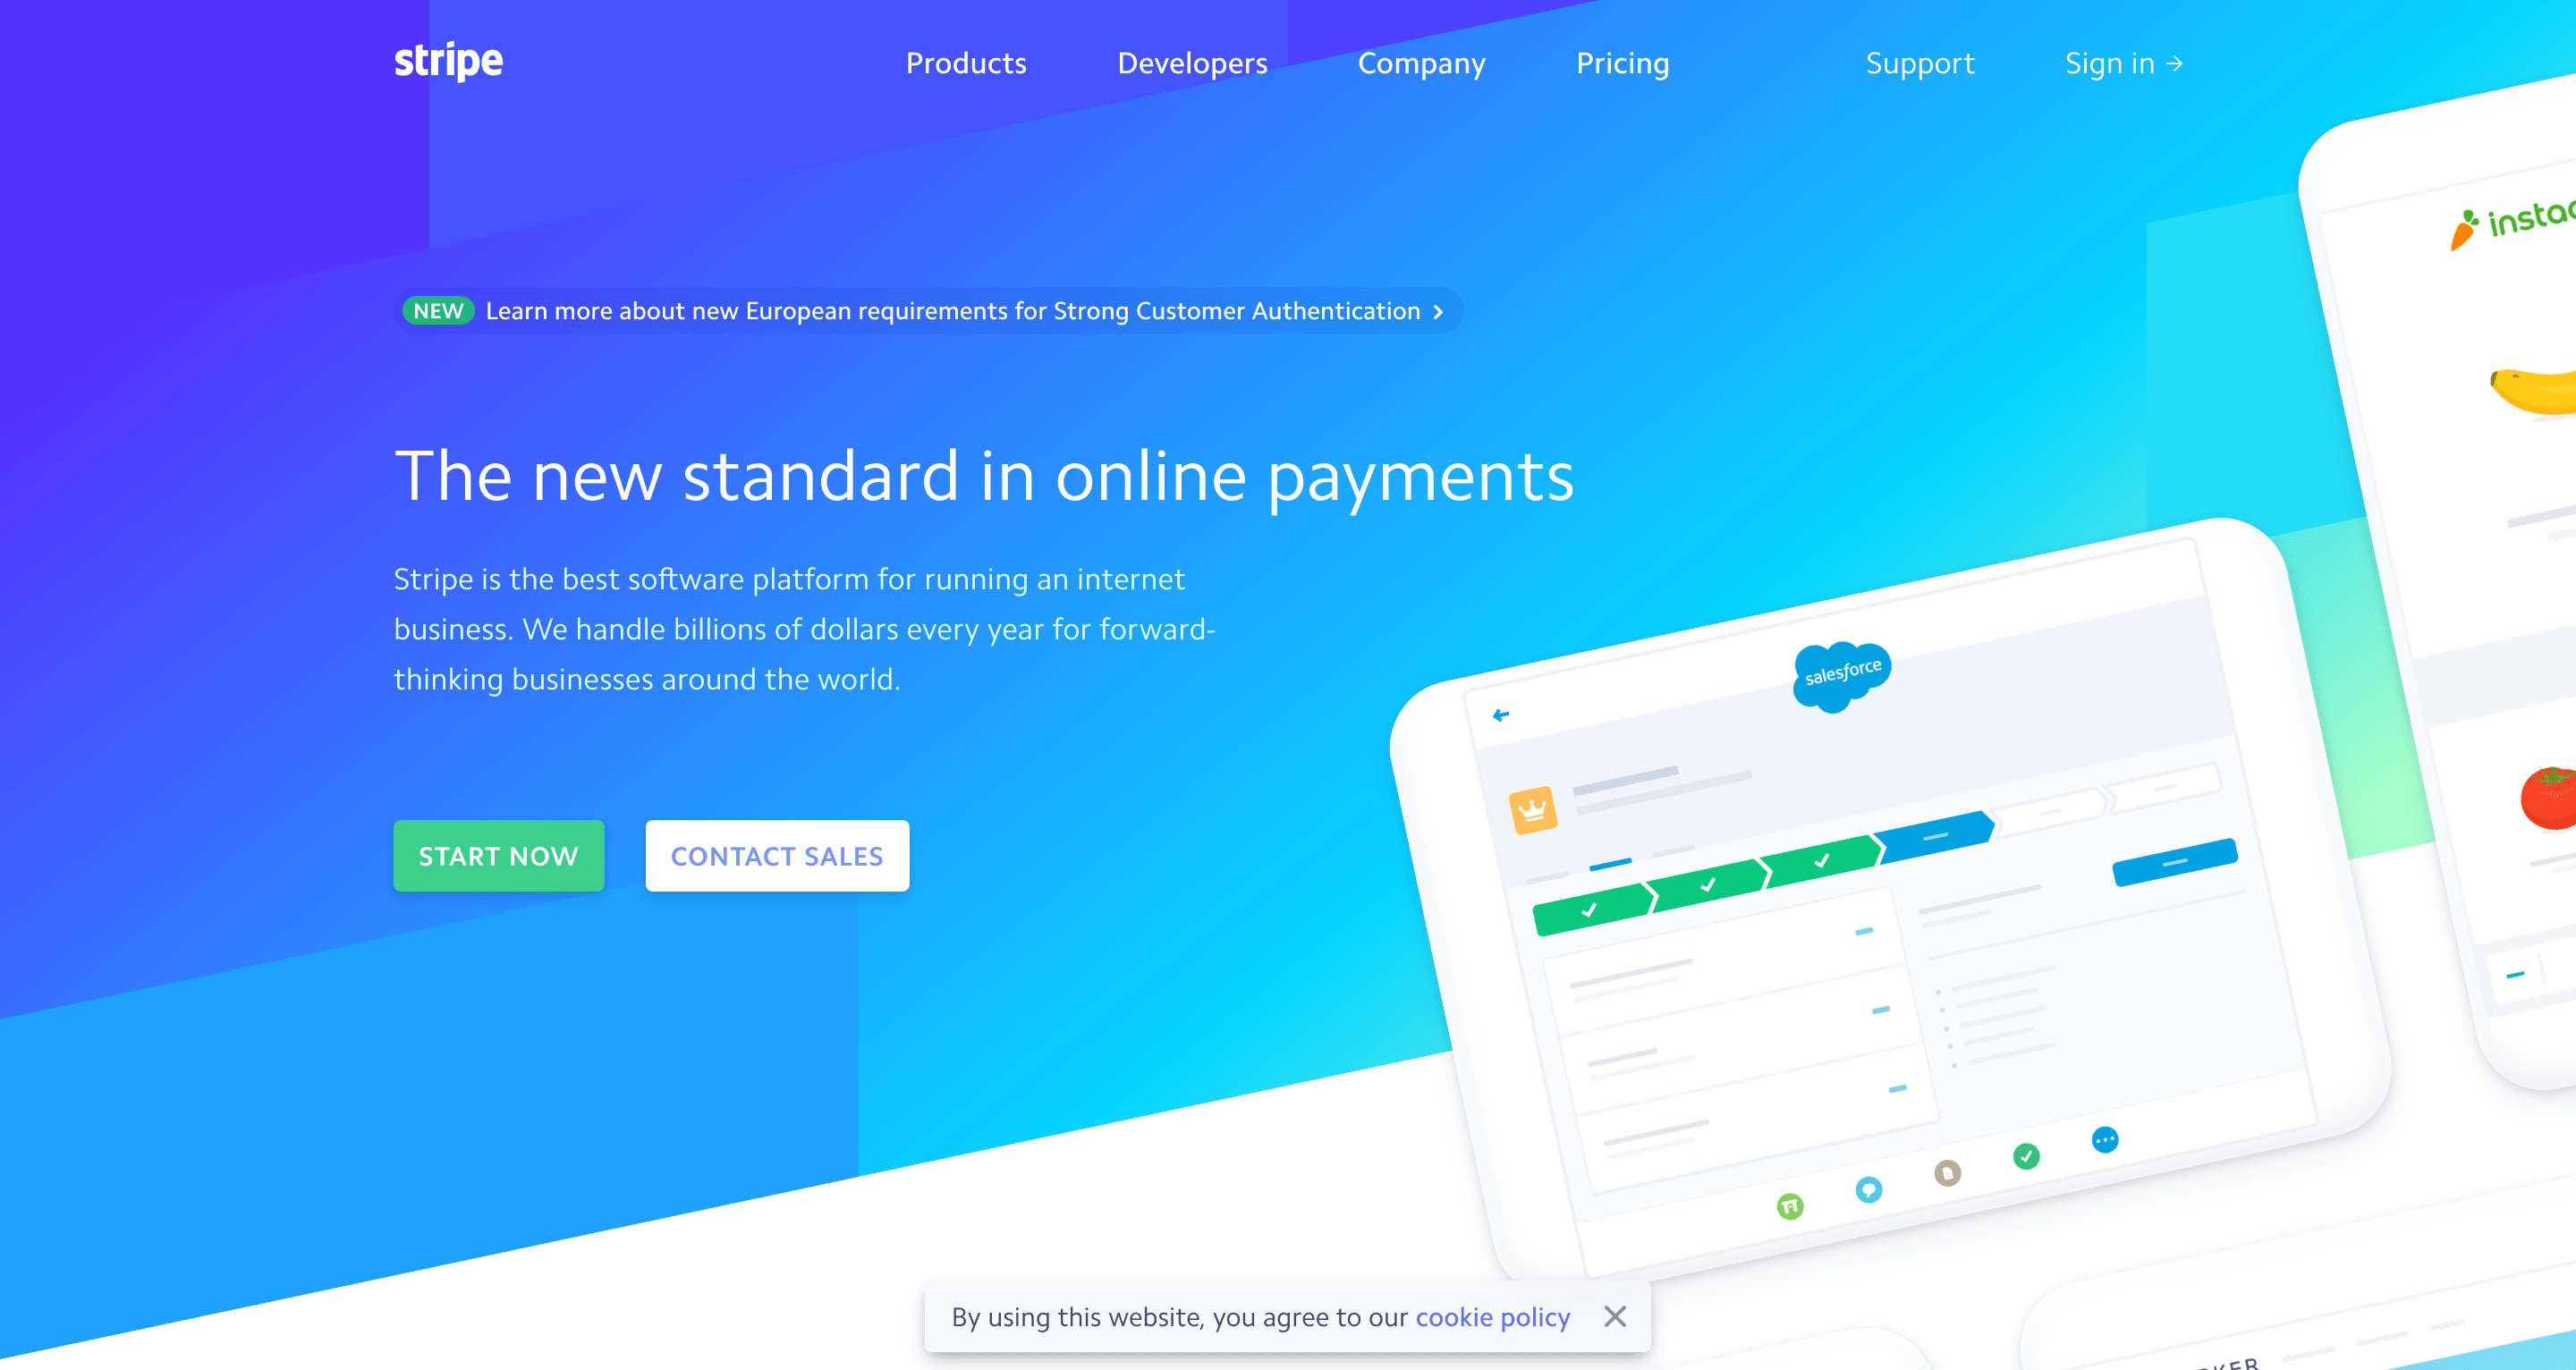 An example of gradients in web design from Stripe